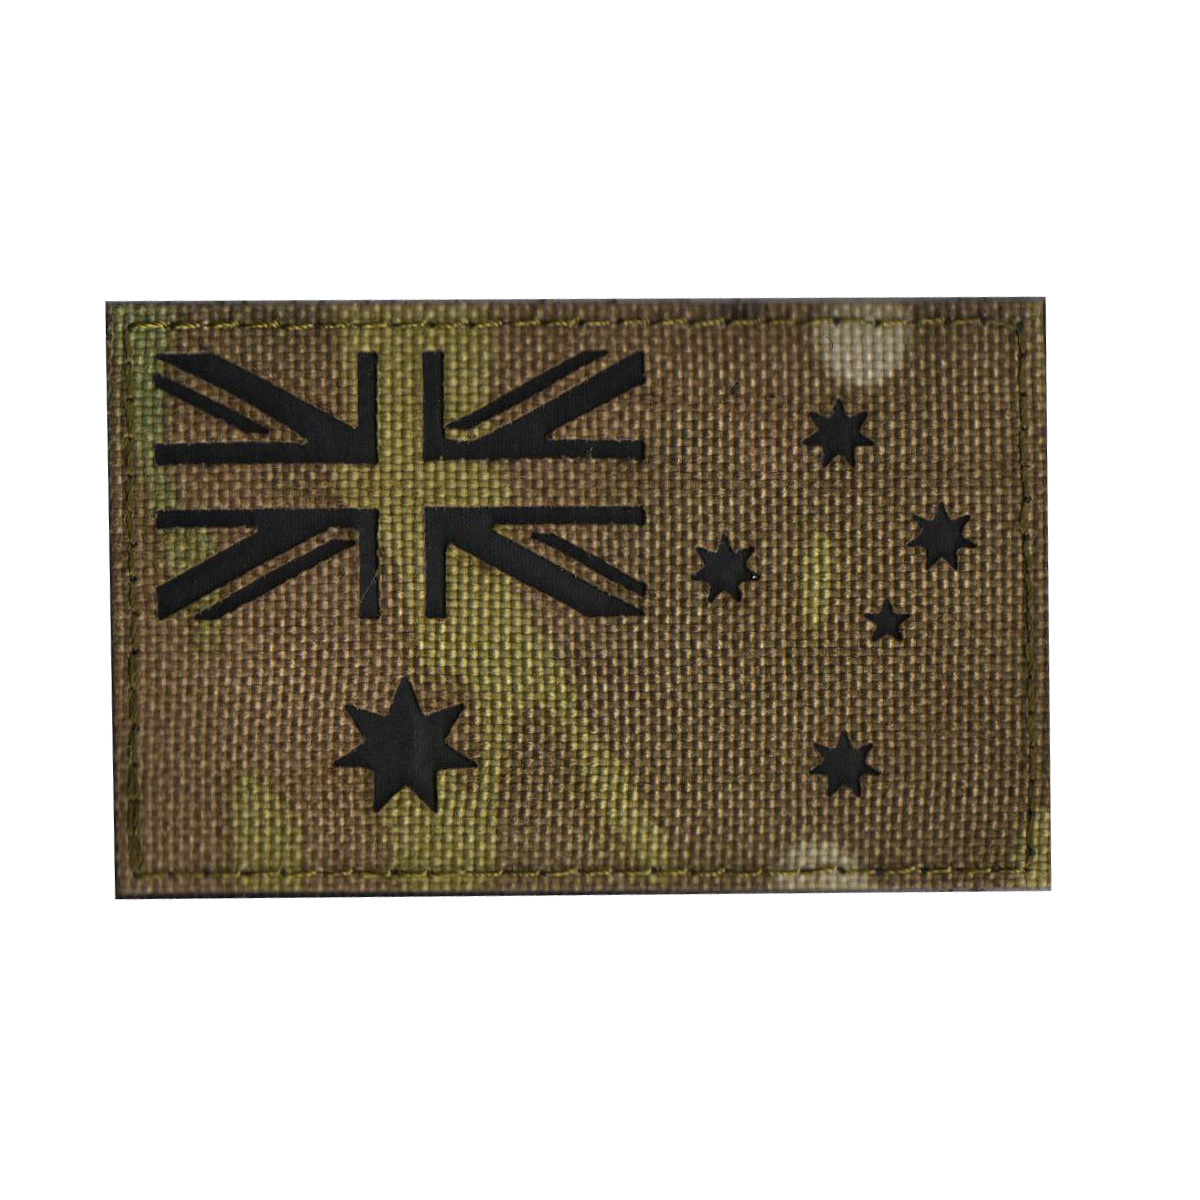 Aor2 Camouflage IR Laser Carving Shoulder Emblem Velcro Label Australia New Zealand Reflective Shoulder Emblem Bag With Chapter